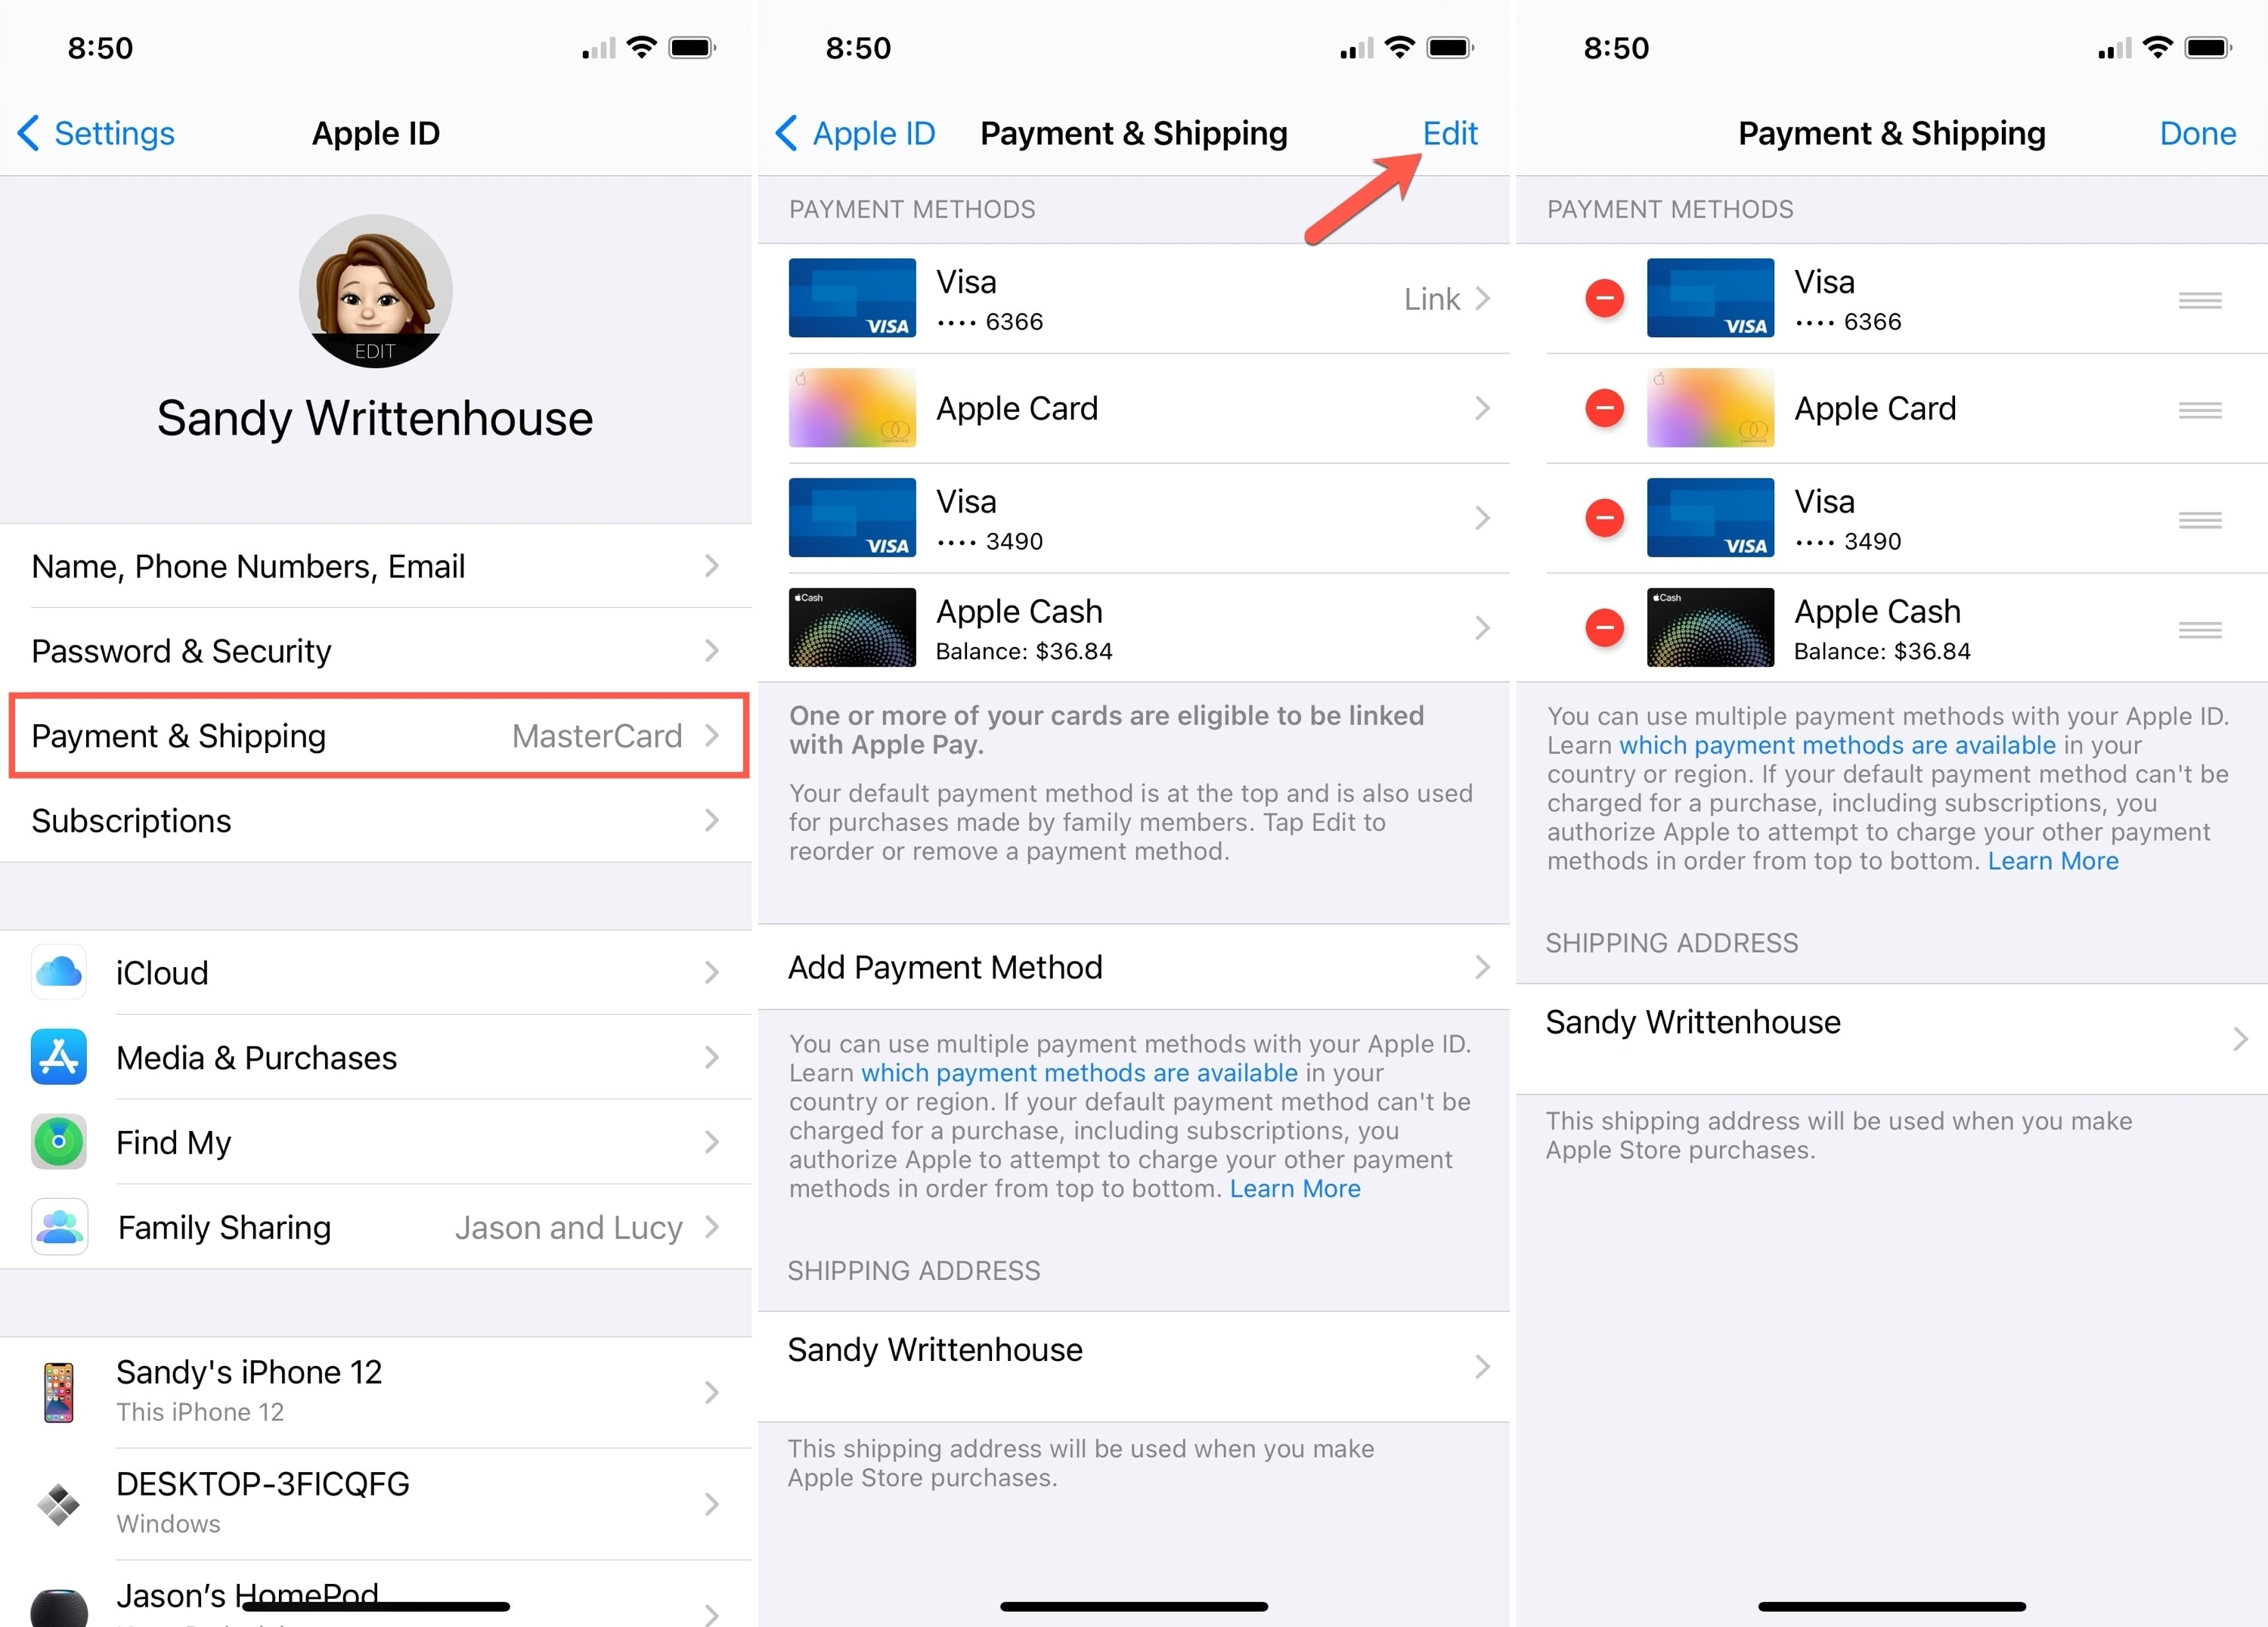 Payment and Shipping in Settings on iPhone